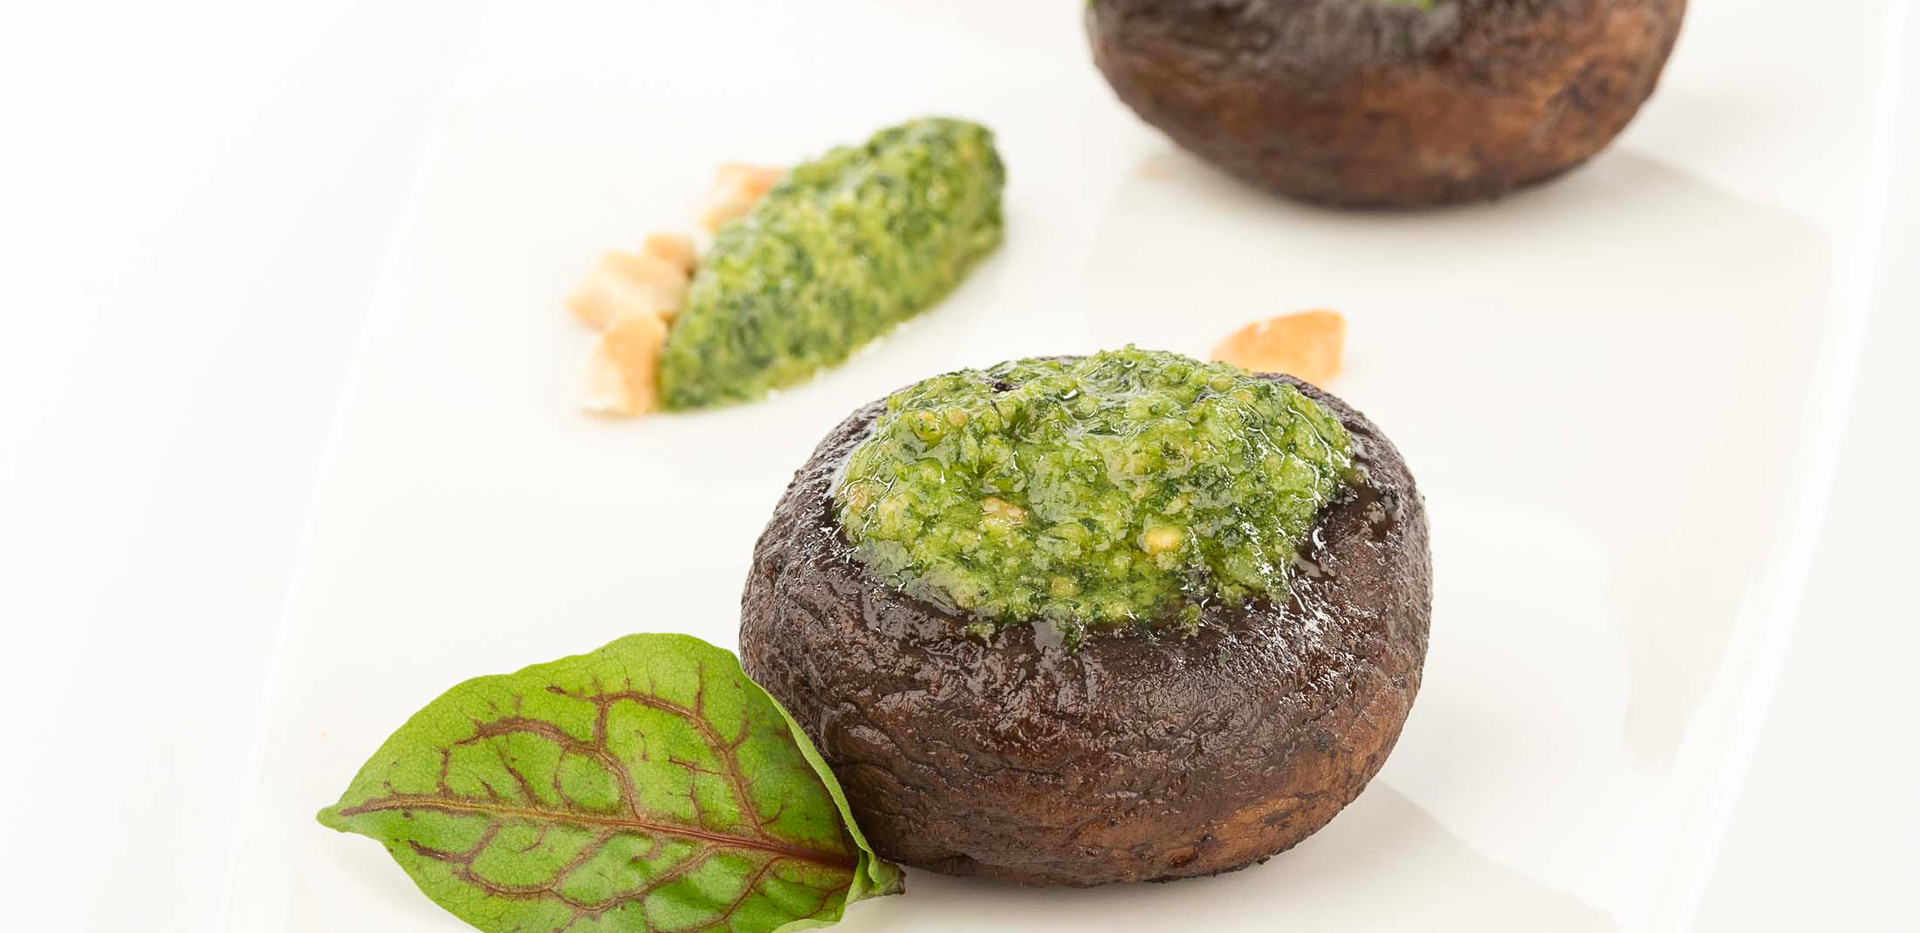 How will you use Rocket Fuel Pesto?